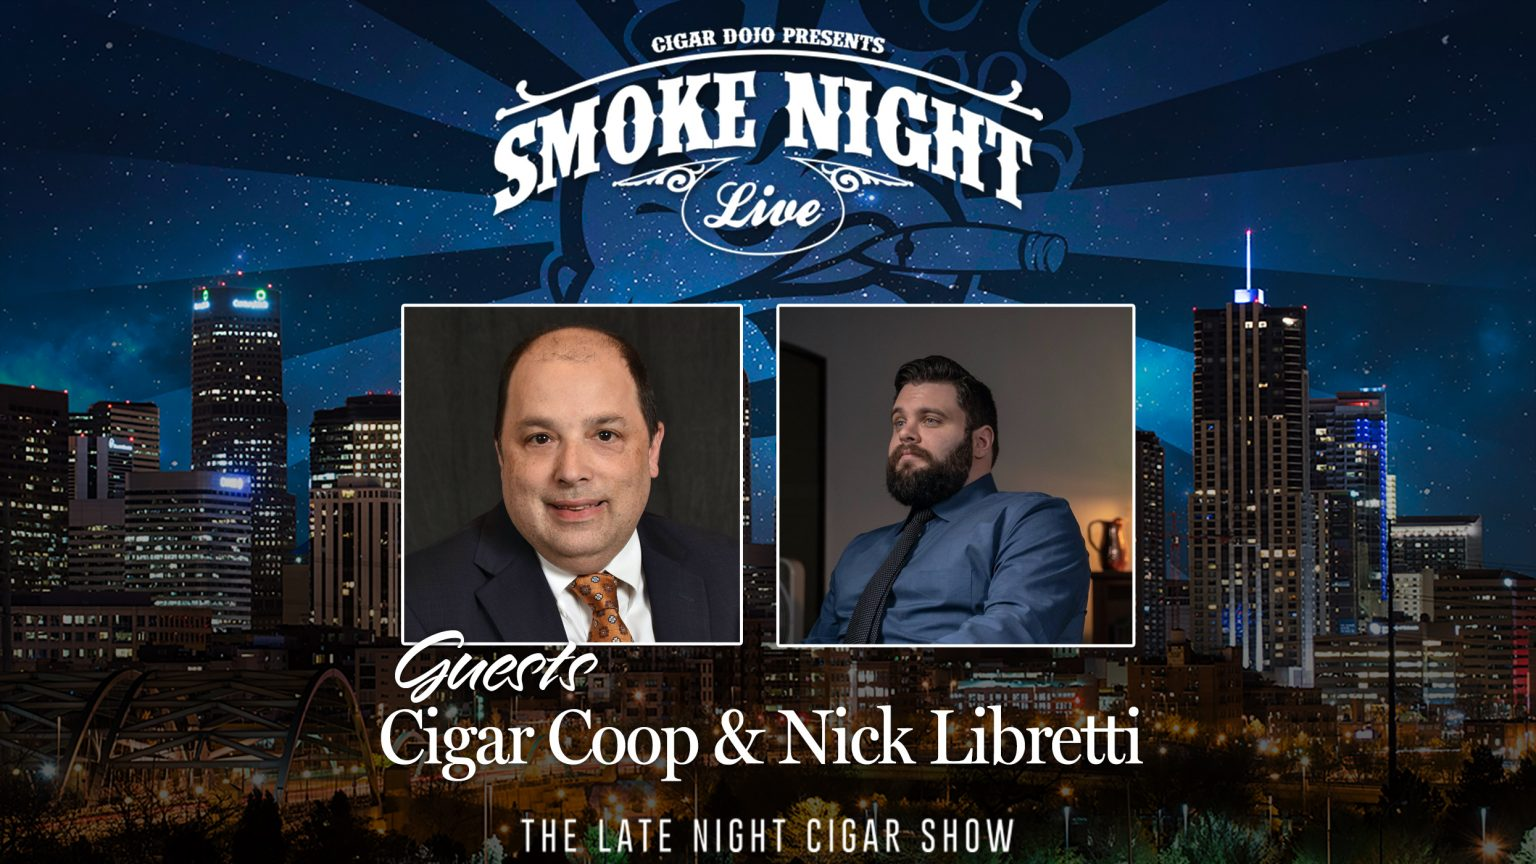 The Blog: Will Cooper Guests on Cigar Dojo's Smoke Night Live